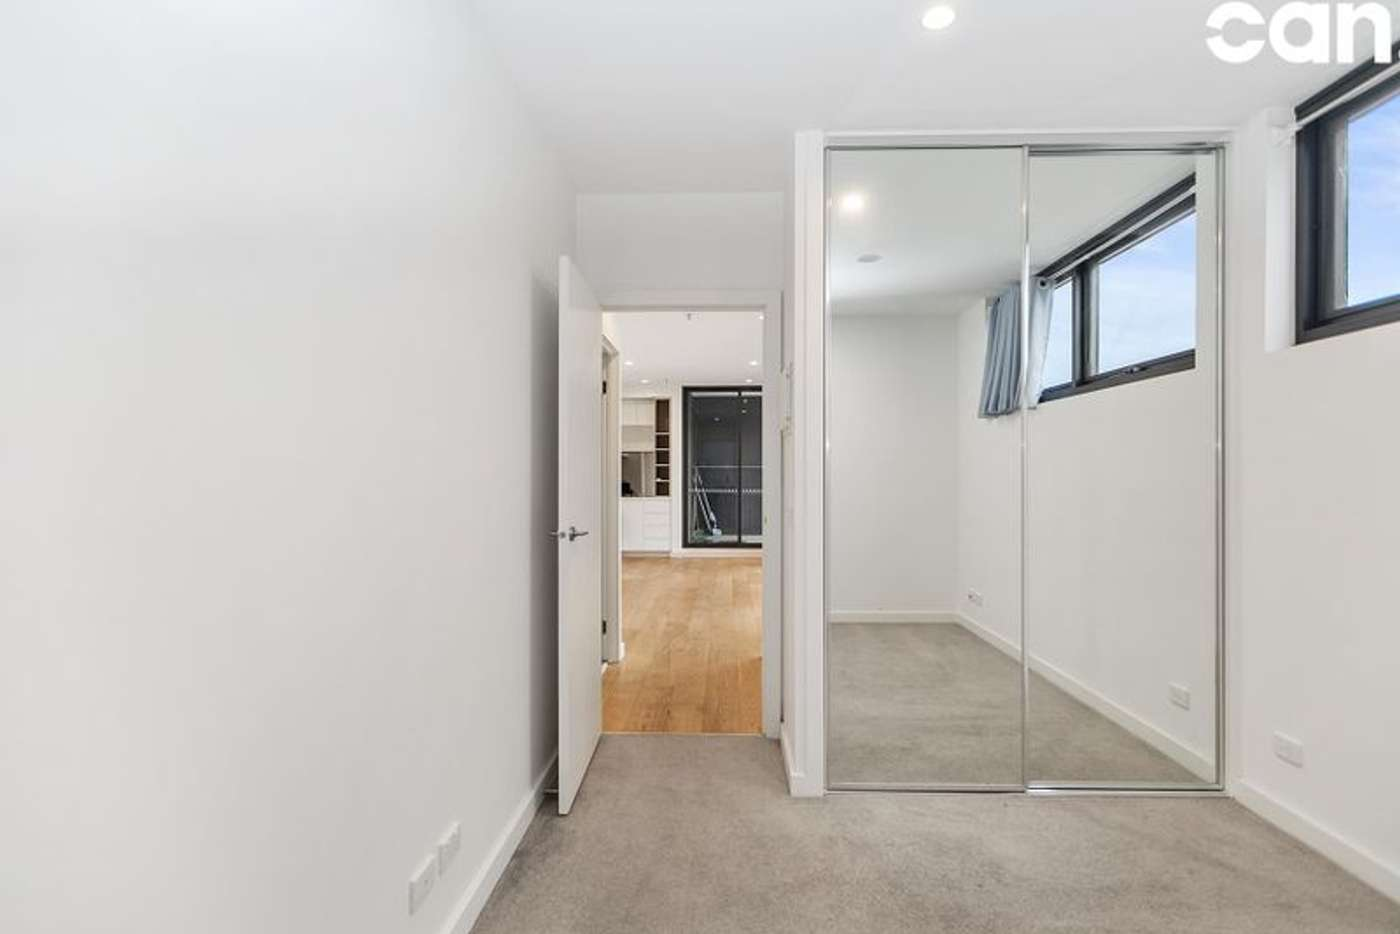 Fifth view of Homely apartment listing, 211/16 Bent Street, Bentleigh VIC 3204